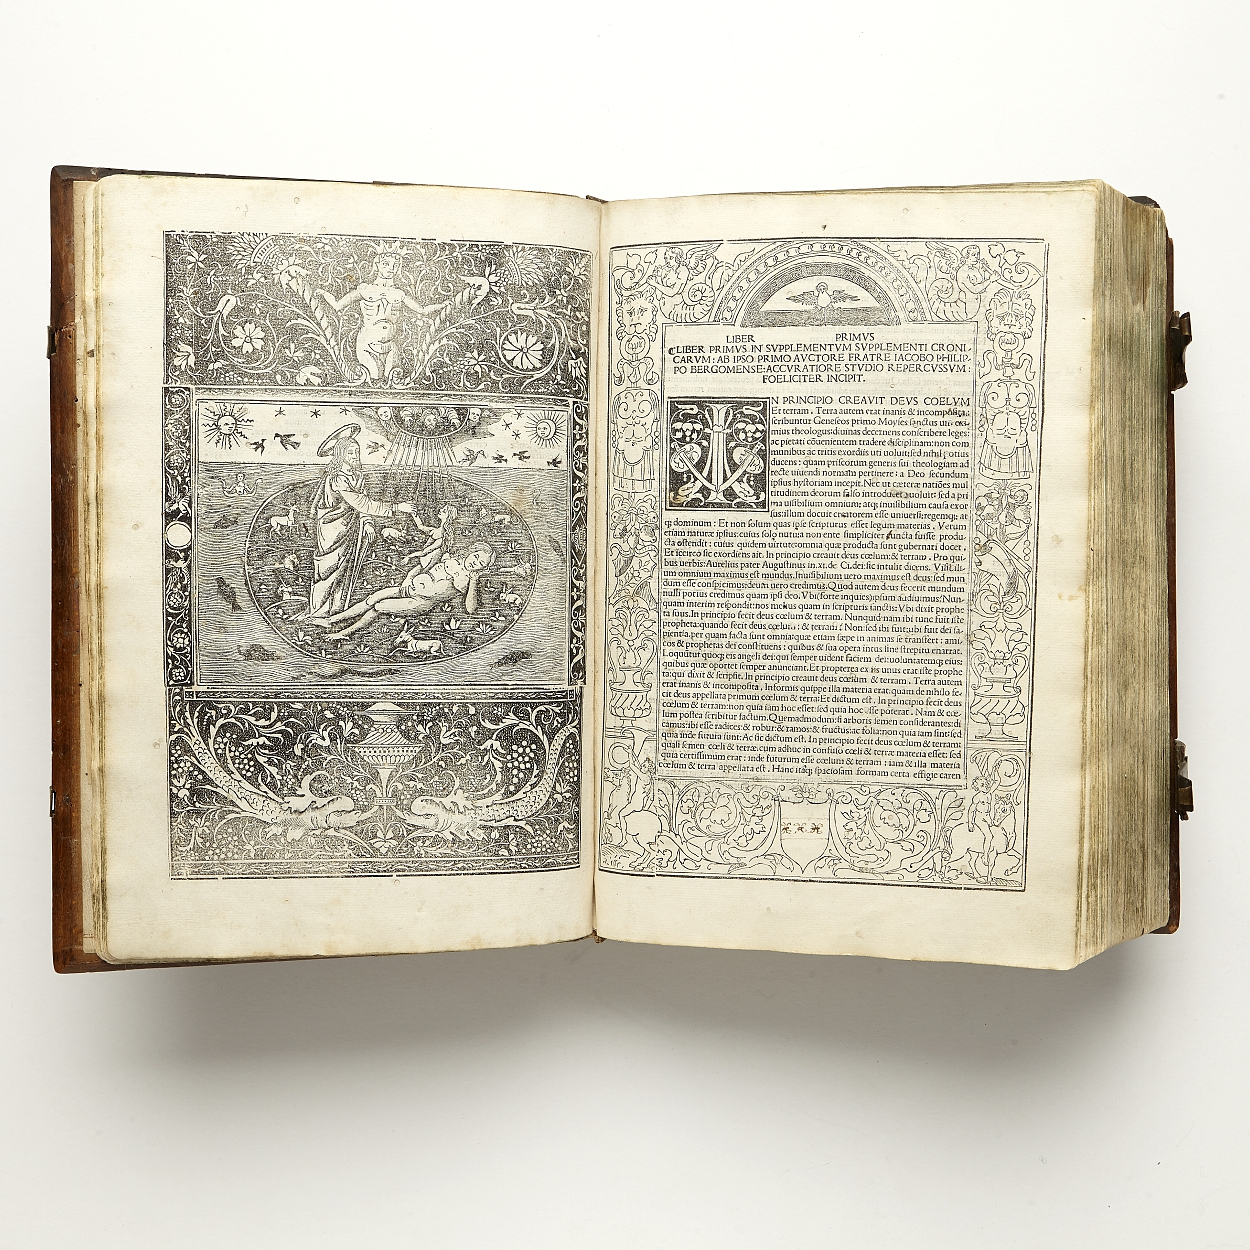 Foresti's richly illustrated chronicle Venice 1506